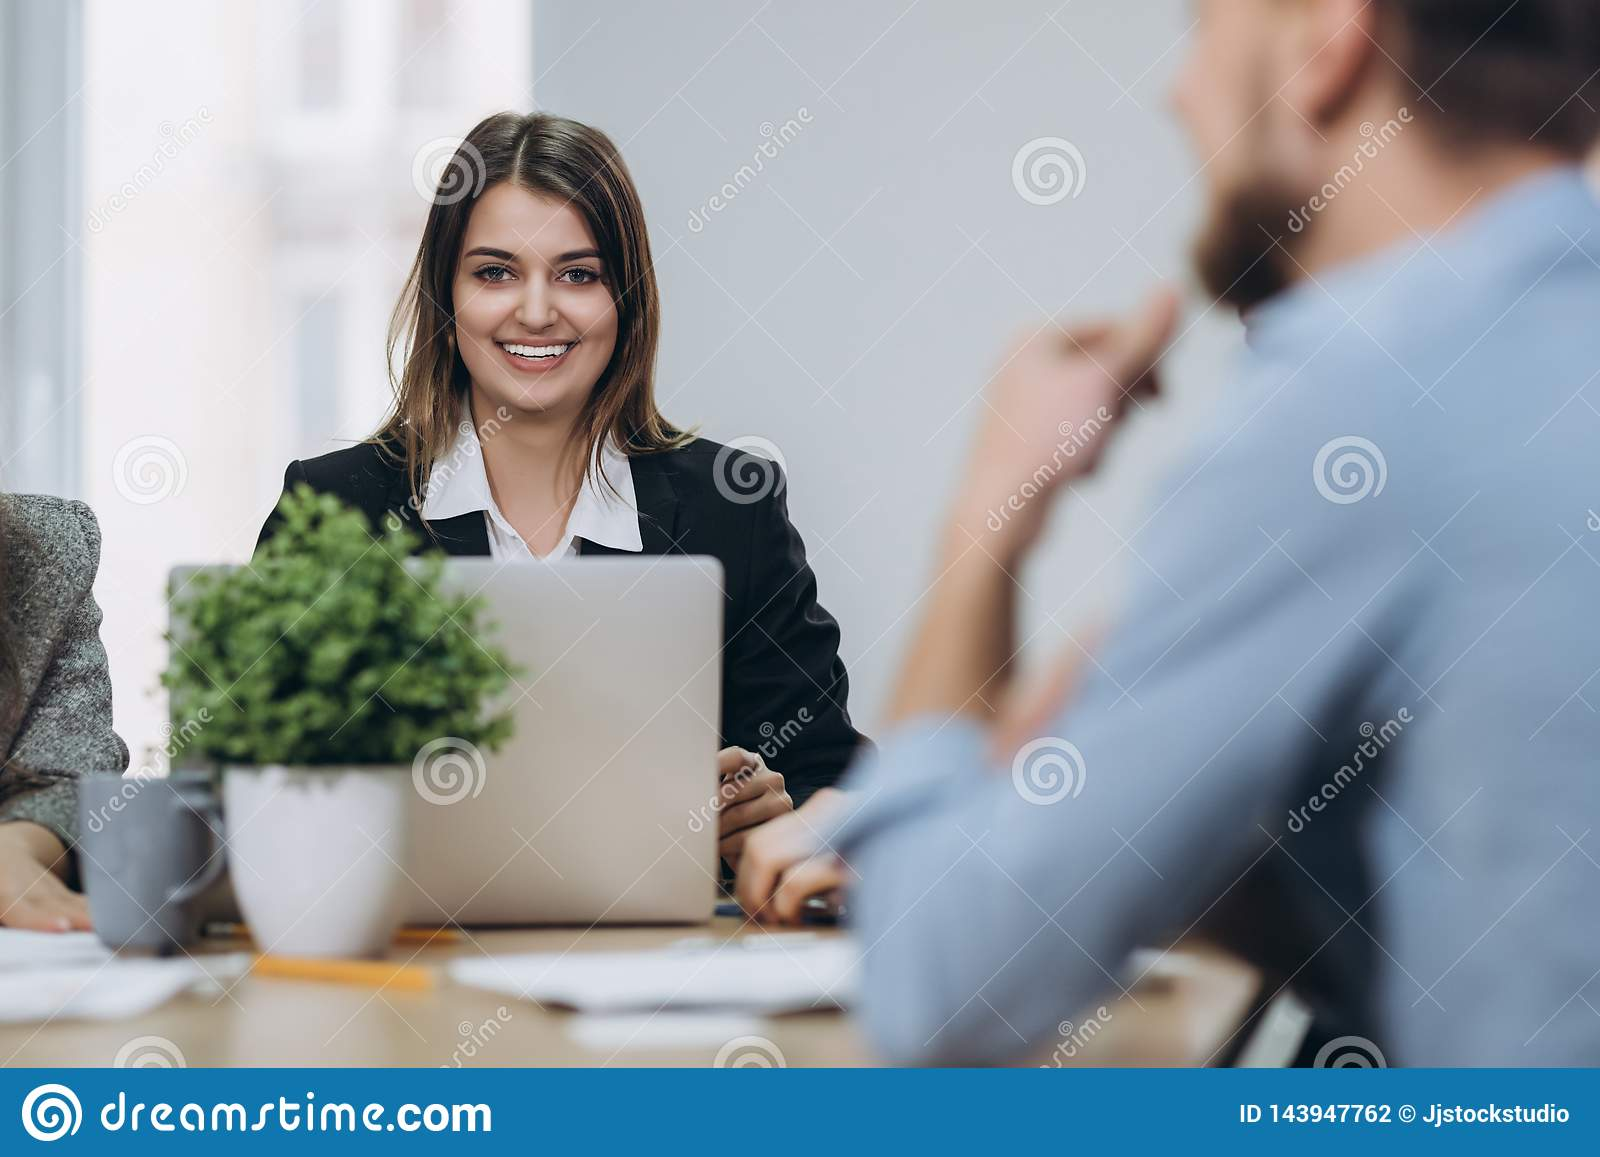 Shot of an attractive mature businesswoman working on laptop in her workstation